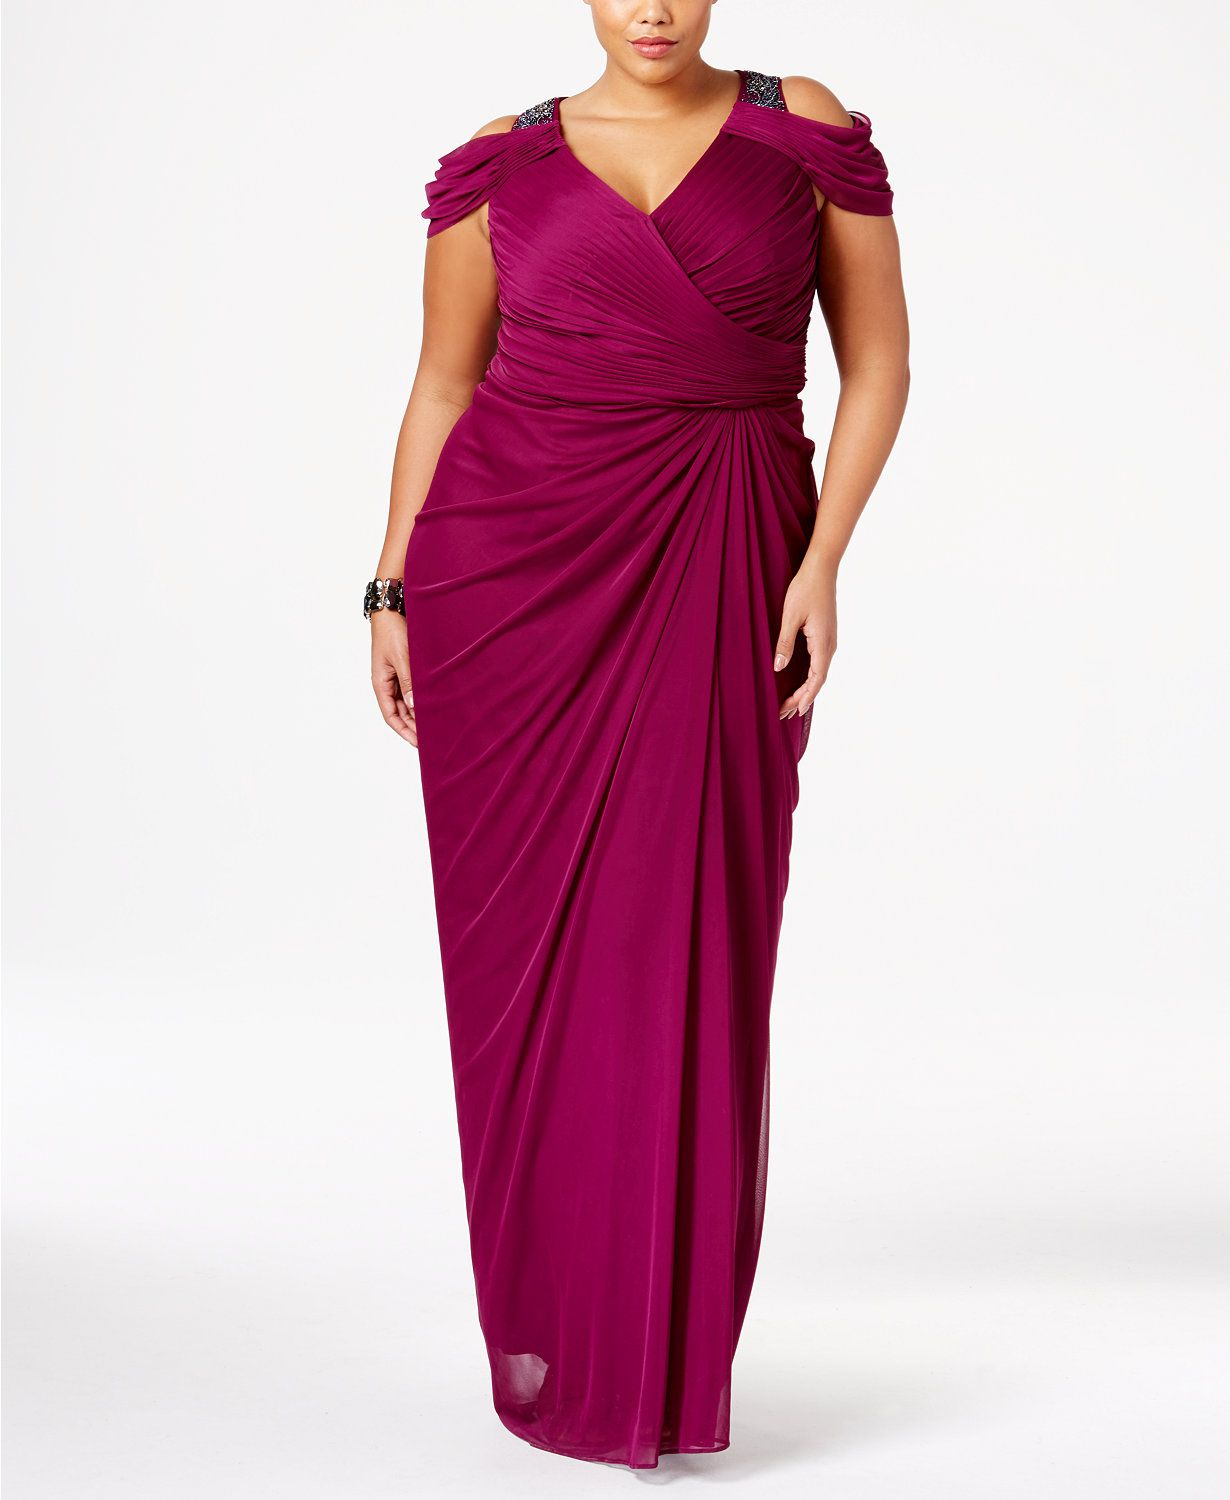 Adrianna Papell Plus Size Beaded Cold-Shoulder Gown | macys.com ...